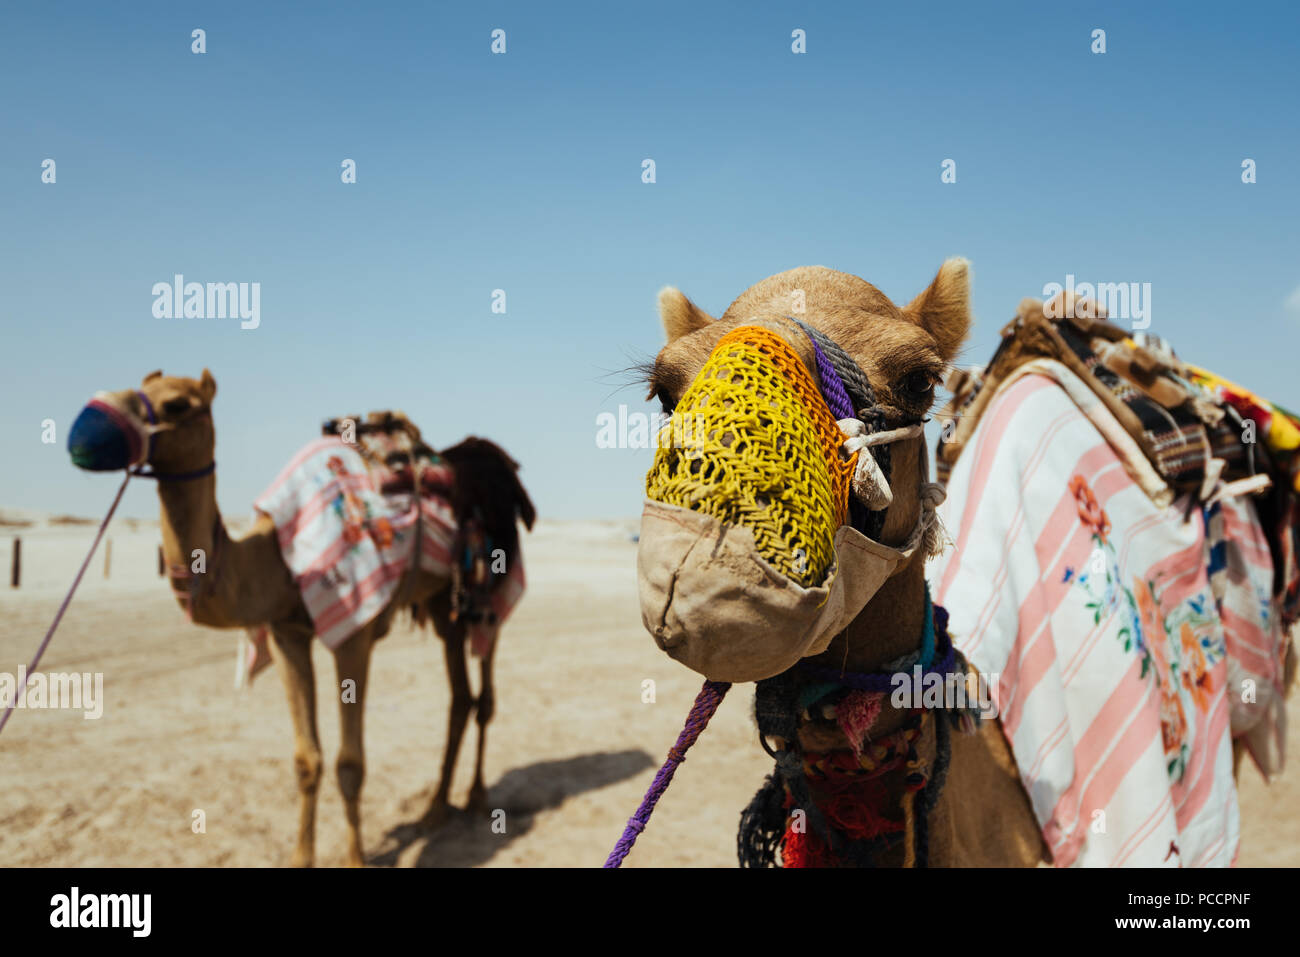 Camels, wearing knitted muzzles to prevent biting or chewing, wait on the Mesaieed desert, also known as Dukhan Heights, Al-Rayyan Municipality, Qatar - Stock Image